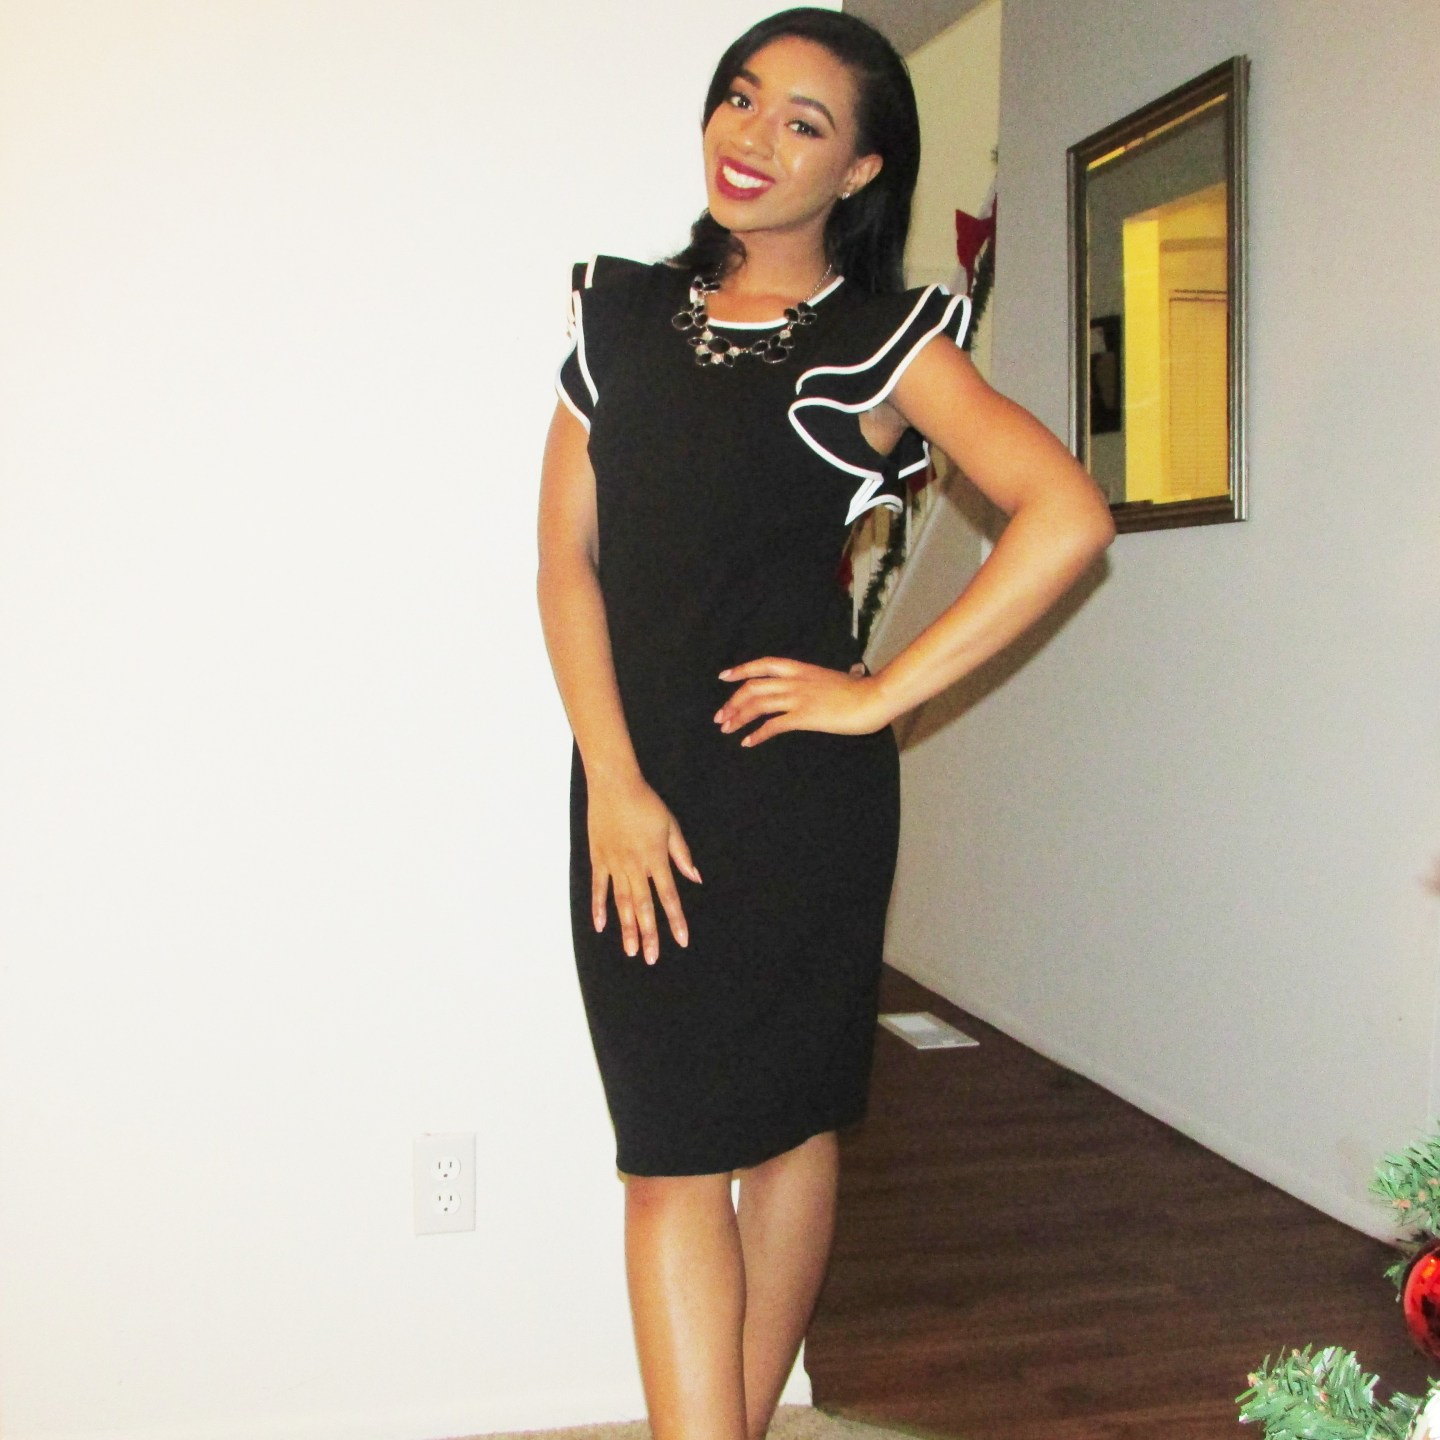 NAACP Banquet + What to Wear When Hosting